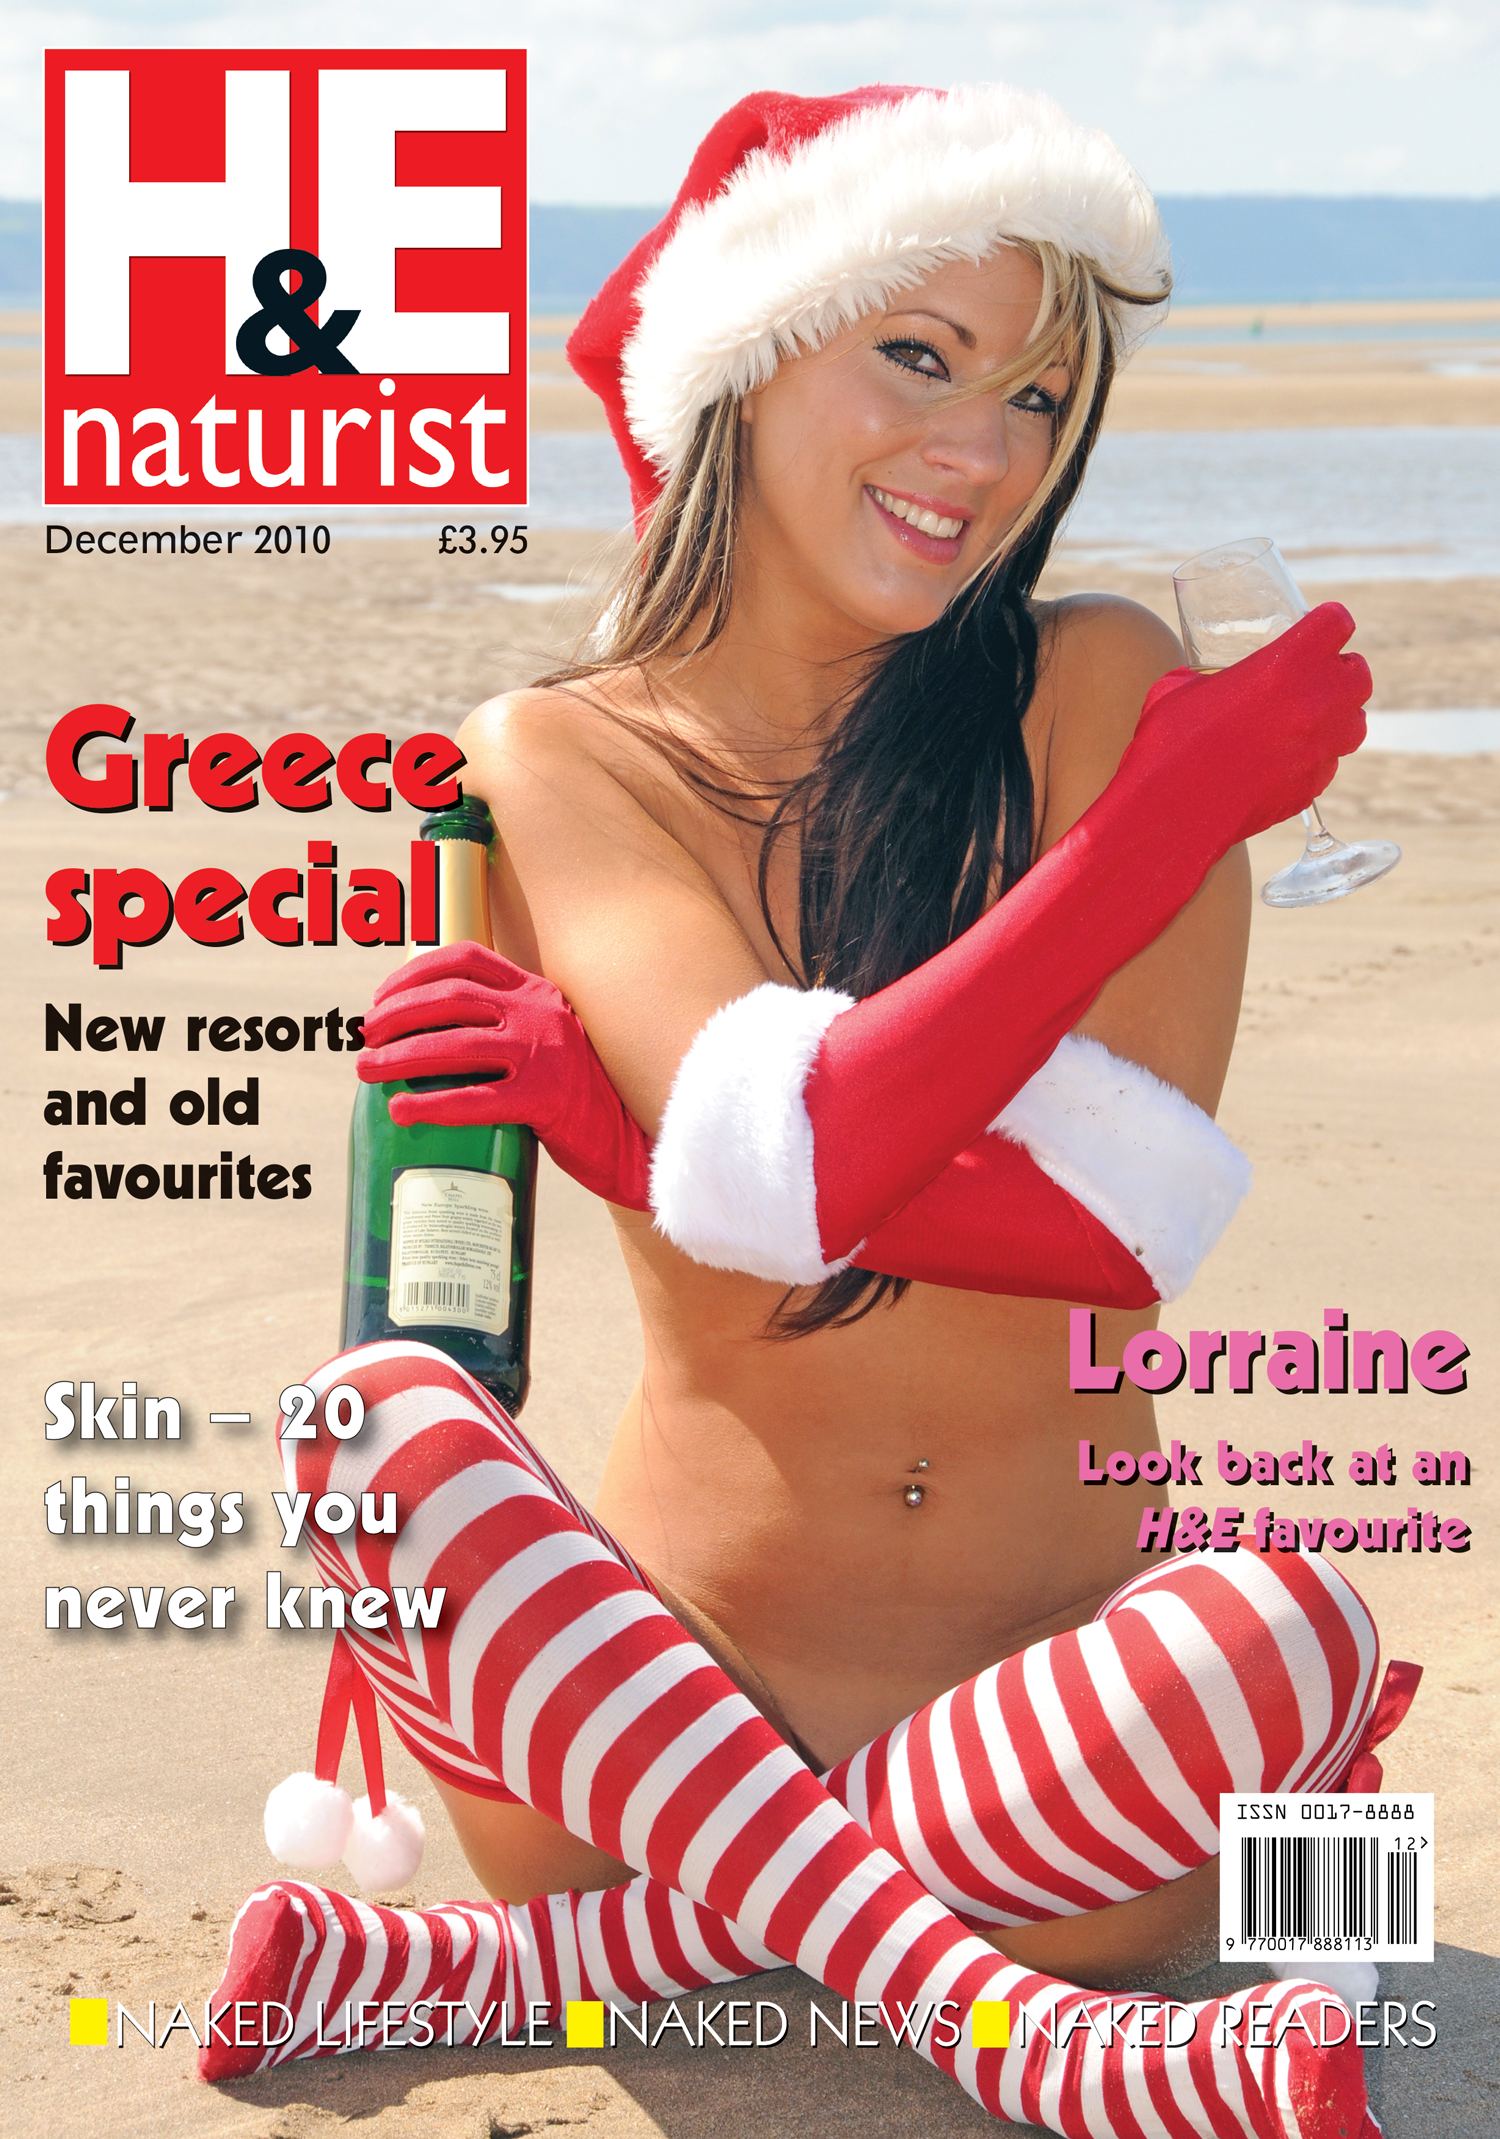 Back issues Archives - H&E naturist magazine